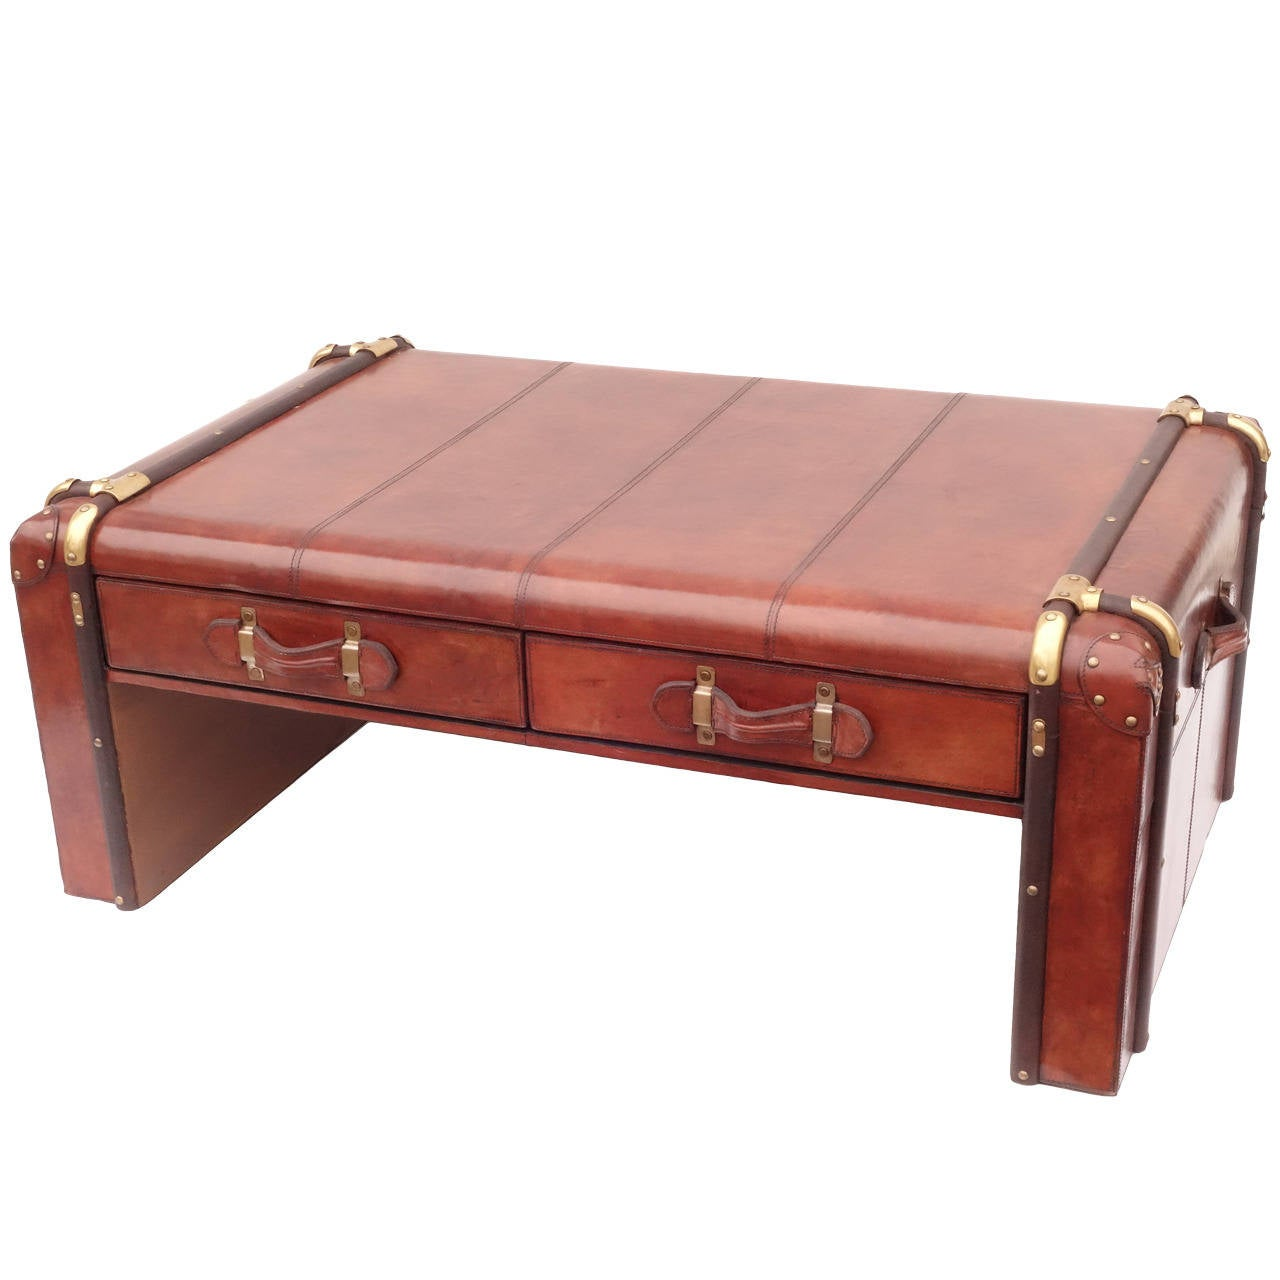 Leather trunk coffee table at 1stdibs Coffee table with leather top